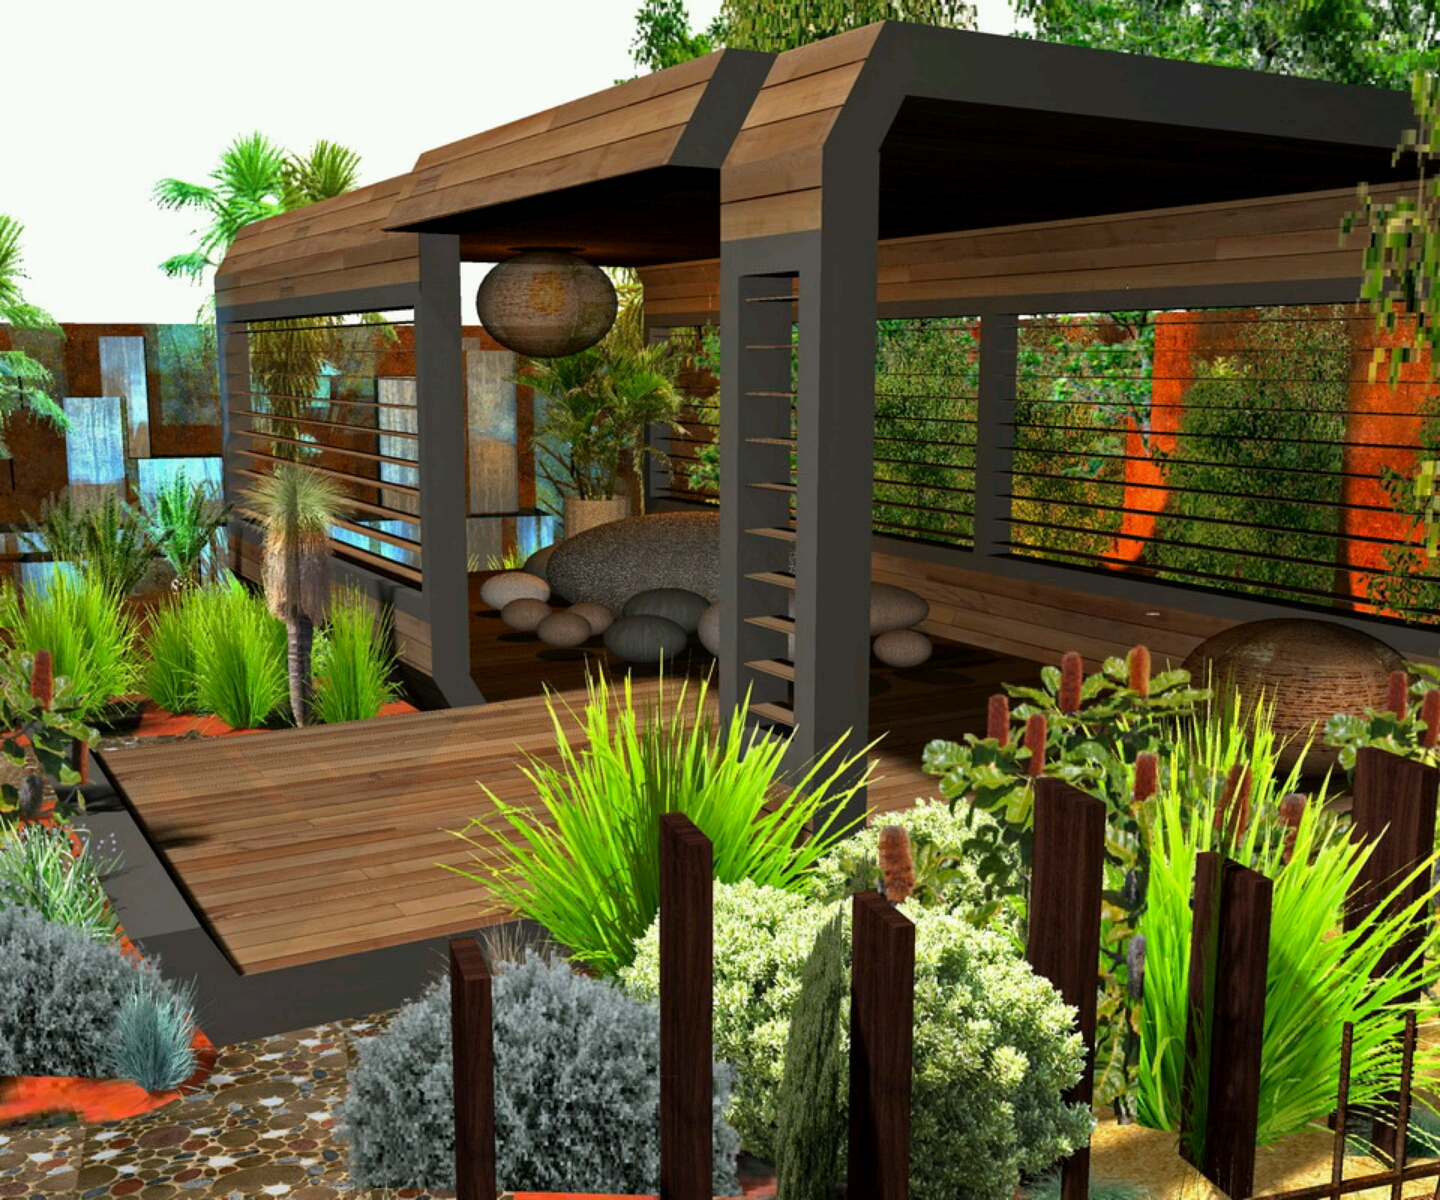 home garden design ideas photo - 4